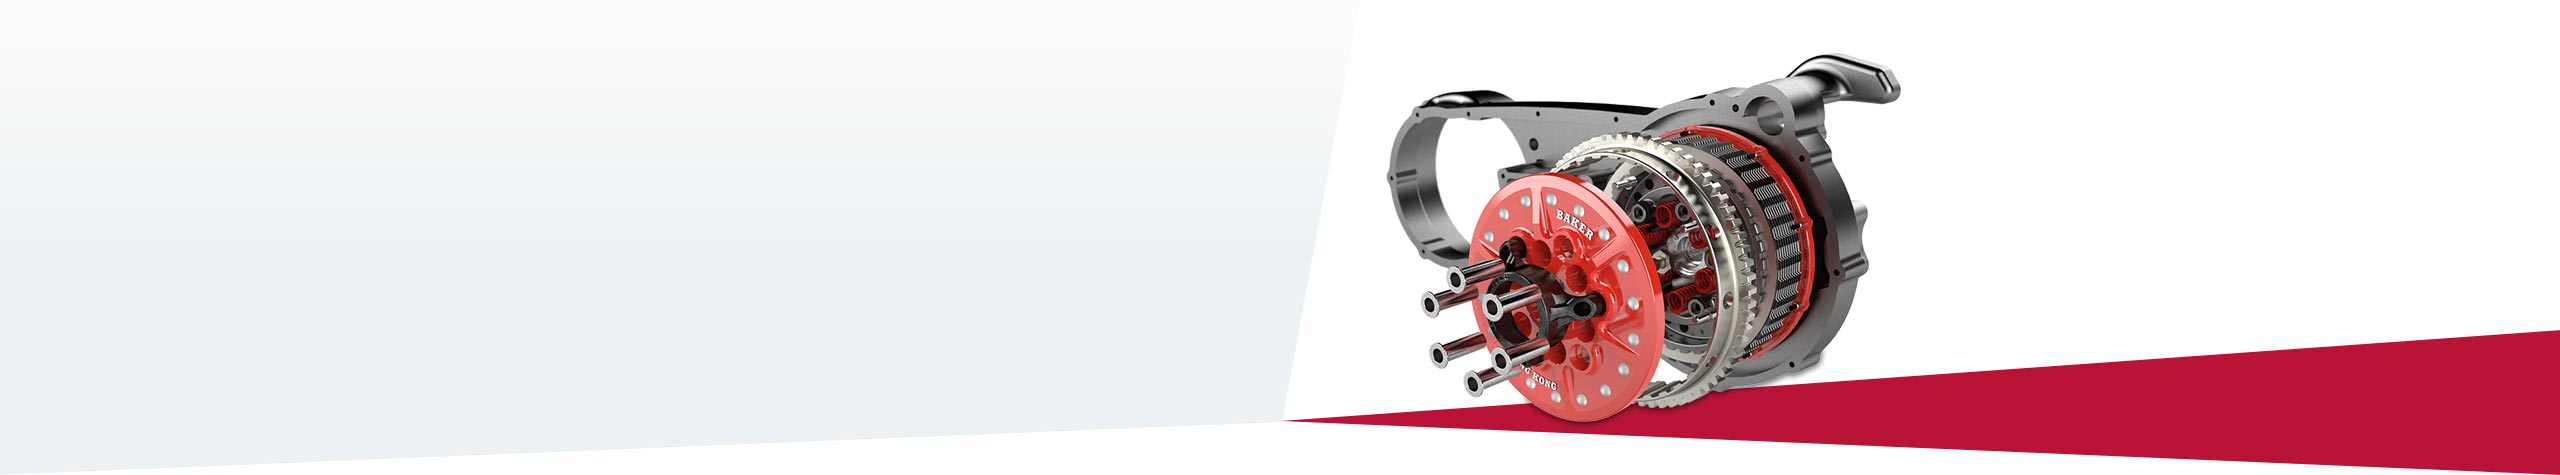 SOLIDWORKS Innovationspakete Aktion: Bis zu 9.900 Euro sparen!